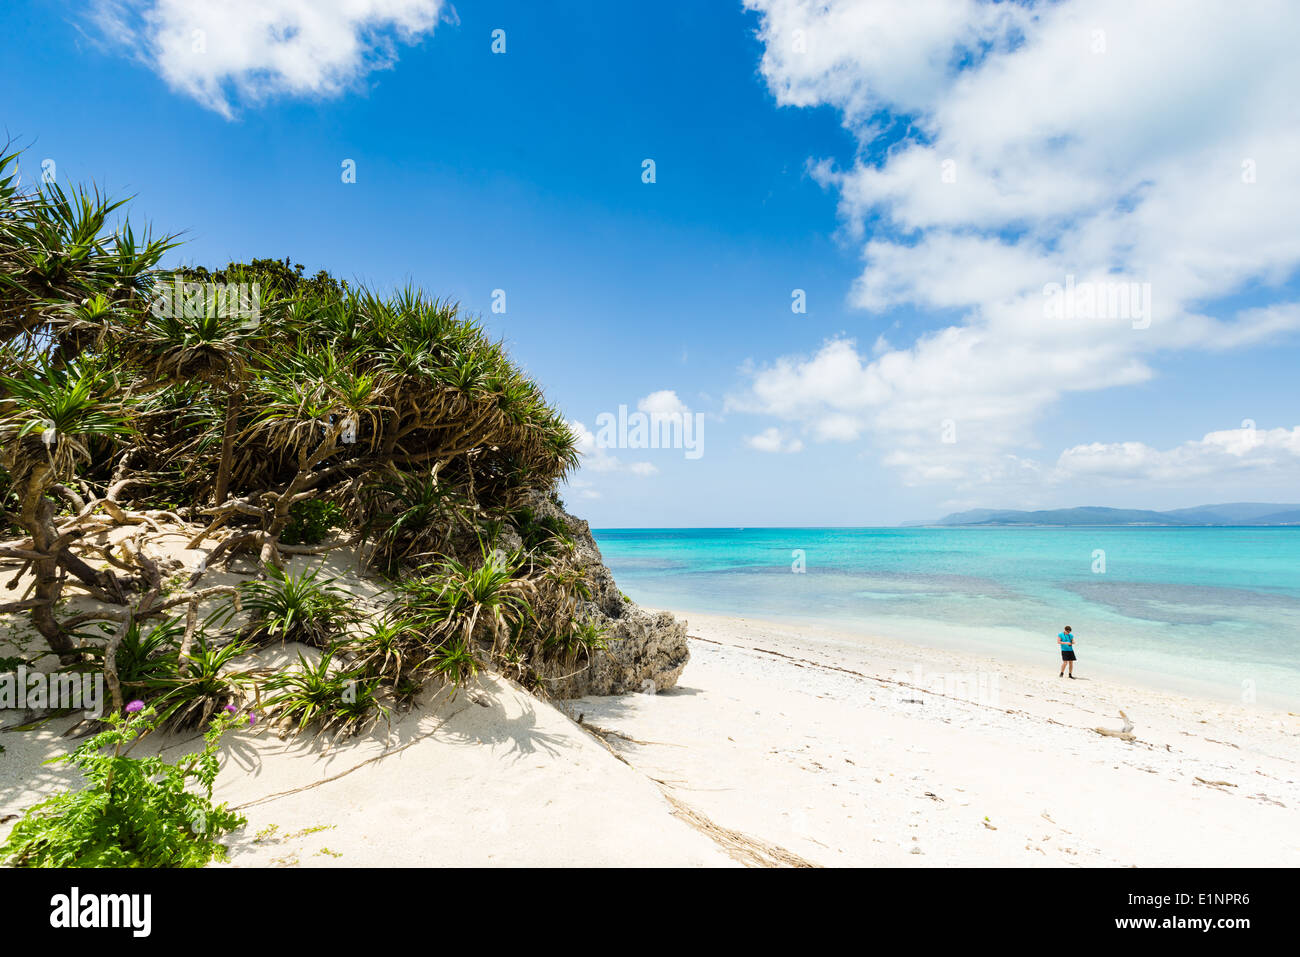 Man admiring perfect white sand beach surrounded by crystal clear tropical water of Okinawa, Japan - Stock Image